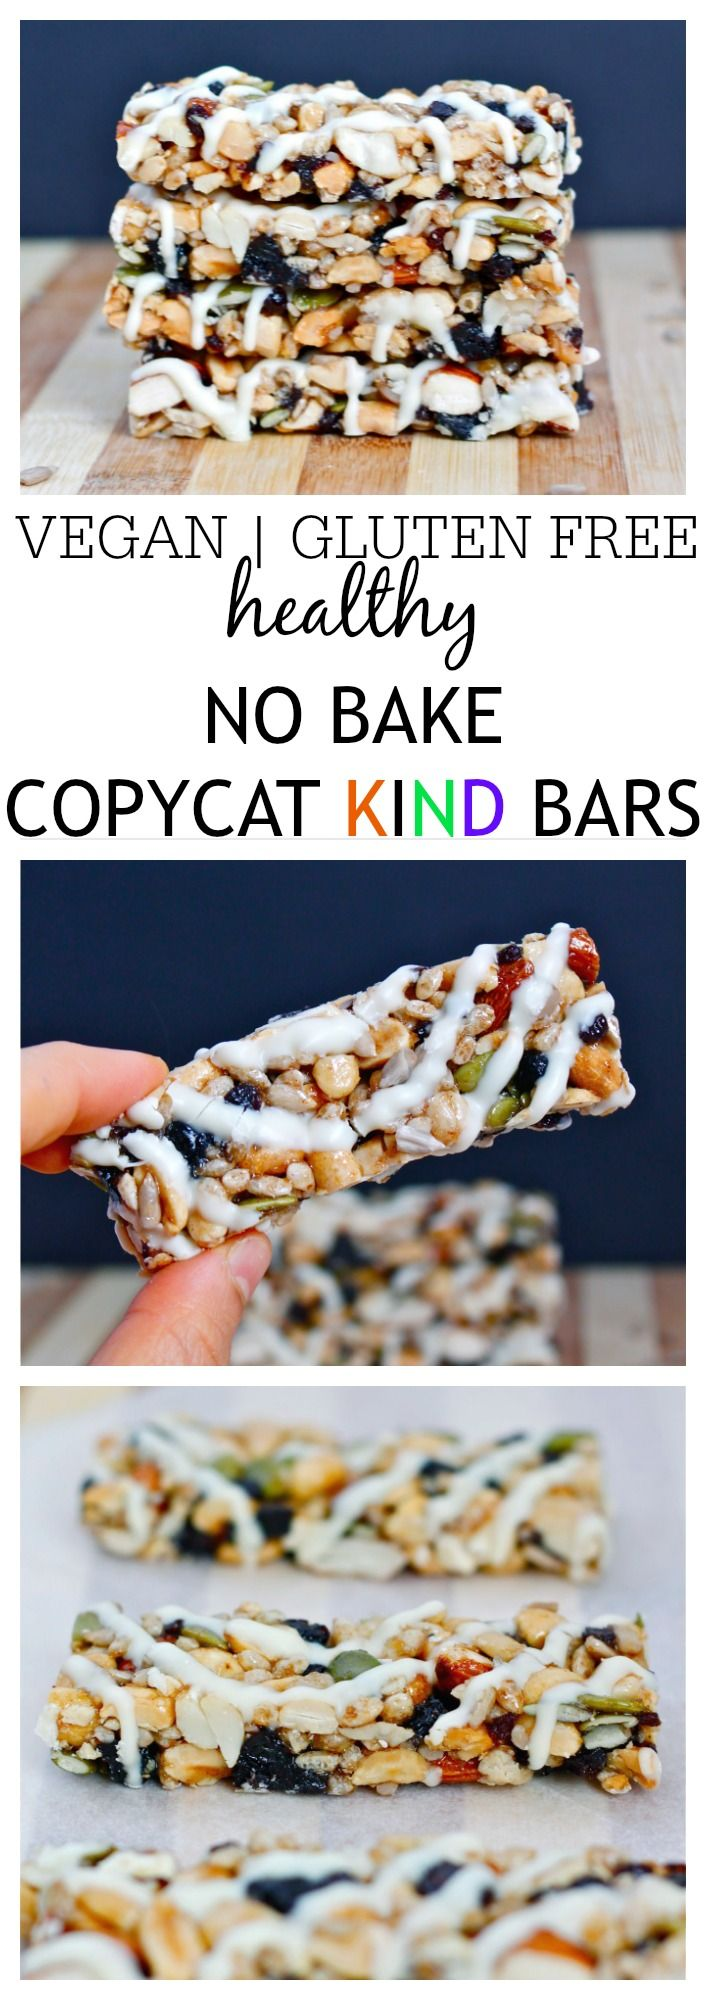 Healthy {NO BAKE} Copycat KIND Bars- These COPYCAT Kind Bars take 1 bowl and 10 minutes to whip up- They are also much cheaper than store bought and dare I say- More delicious than it's inspiration? Gluten free, vegan and with a protein optional boost! @thebigmansworld - thebigmansworld.com